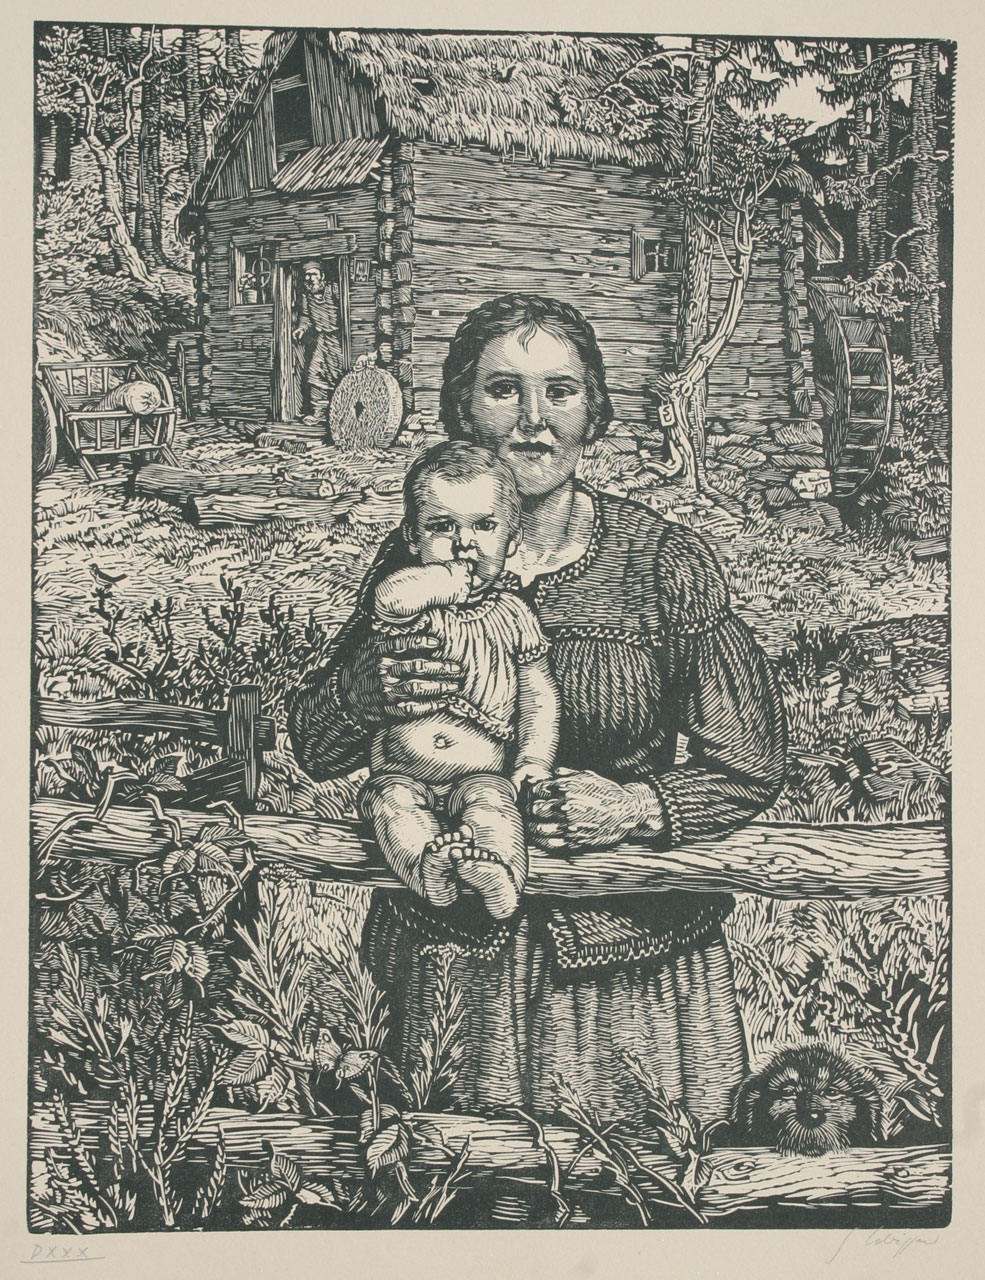 Switbert Lobisser (1878-1943), The beautiful miller's wife, 1939, woodcut, 45x34cm, signed and numbered op.530